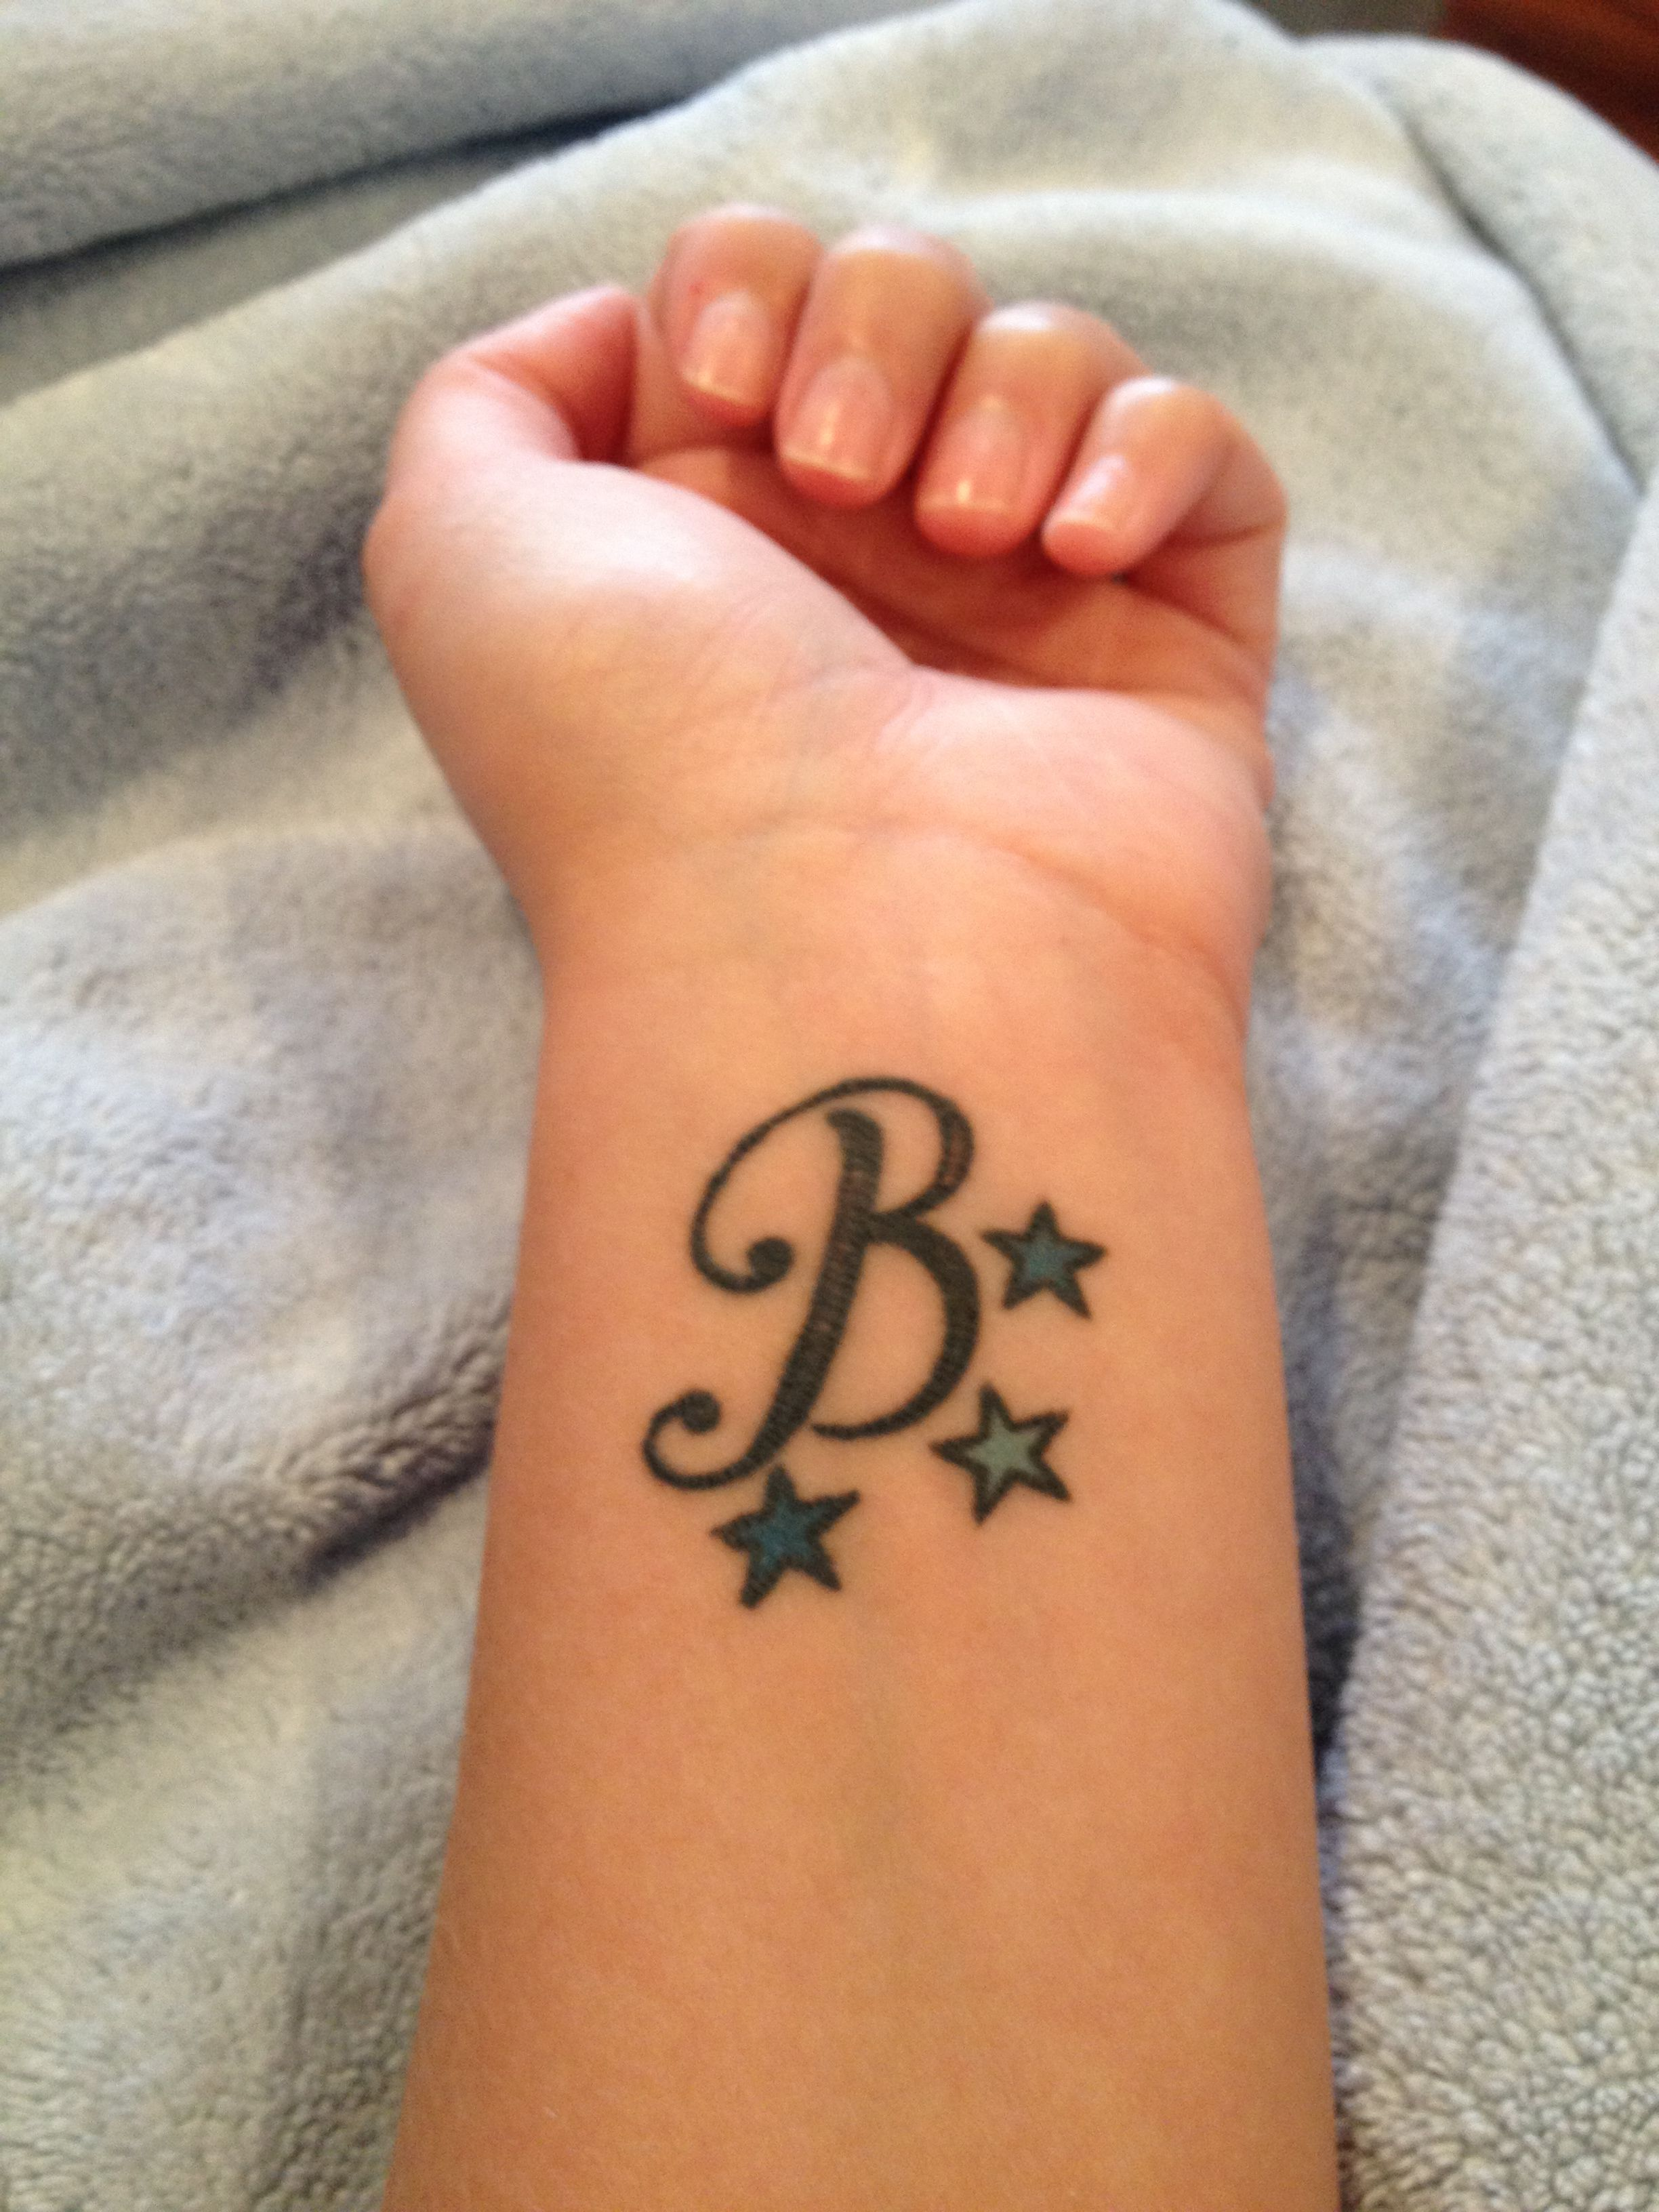 my letter b tattoo tattoes b pinterest b tattoo letter b tattoo and letter b. Black Bedroom Furniture Sets. Home Design Ideas